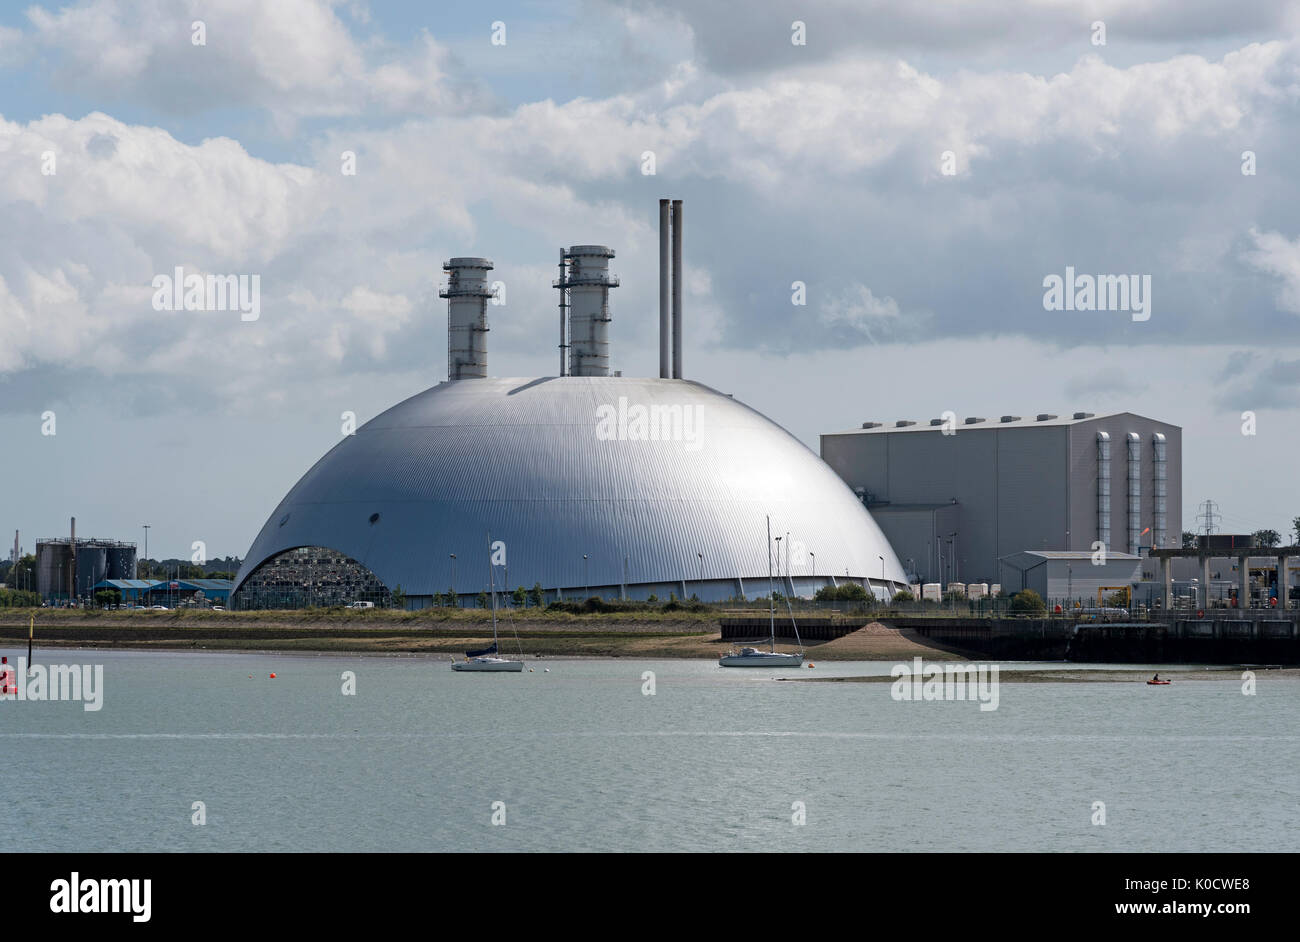 MRF Marchwood the aluminium cladded dome building on Southampton Water UK. The unit processes non recyclable waste to produce electricity. - Stock Image